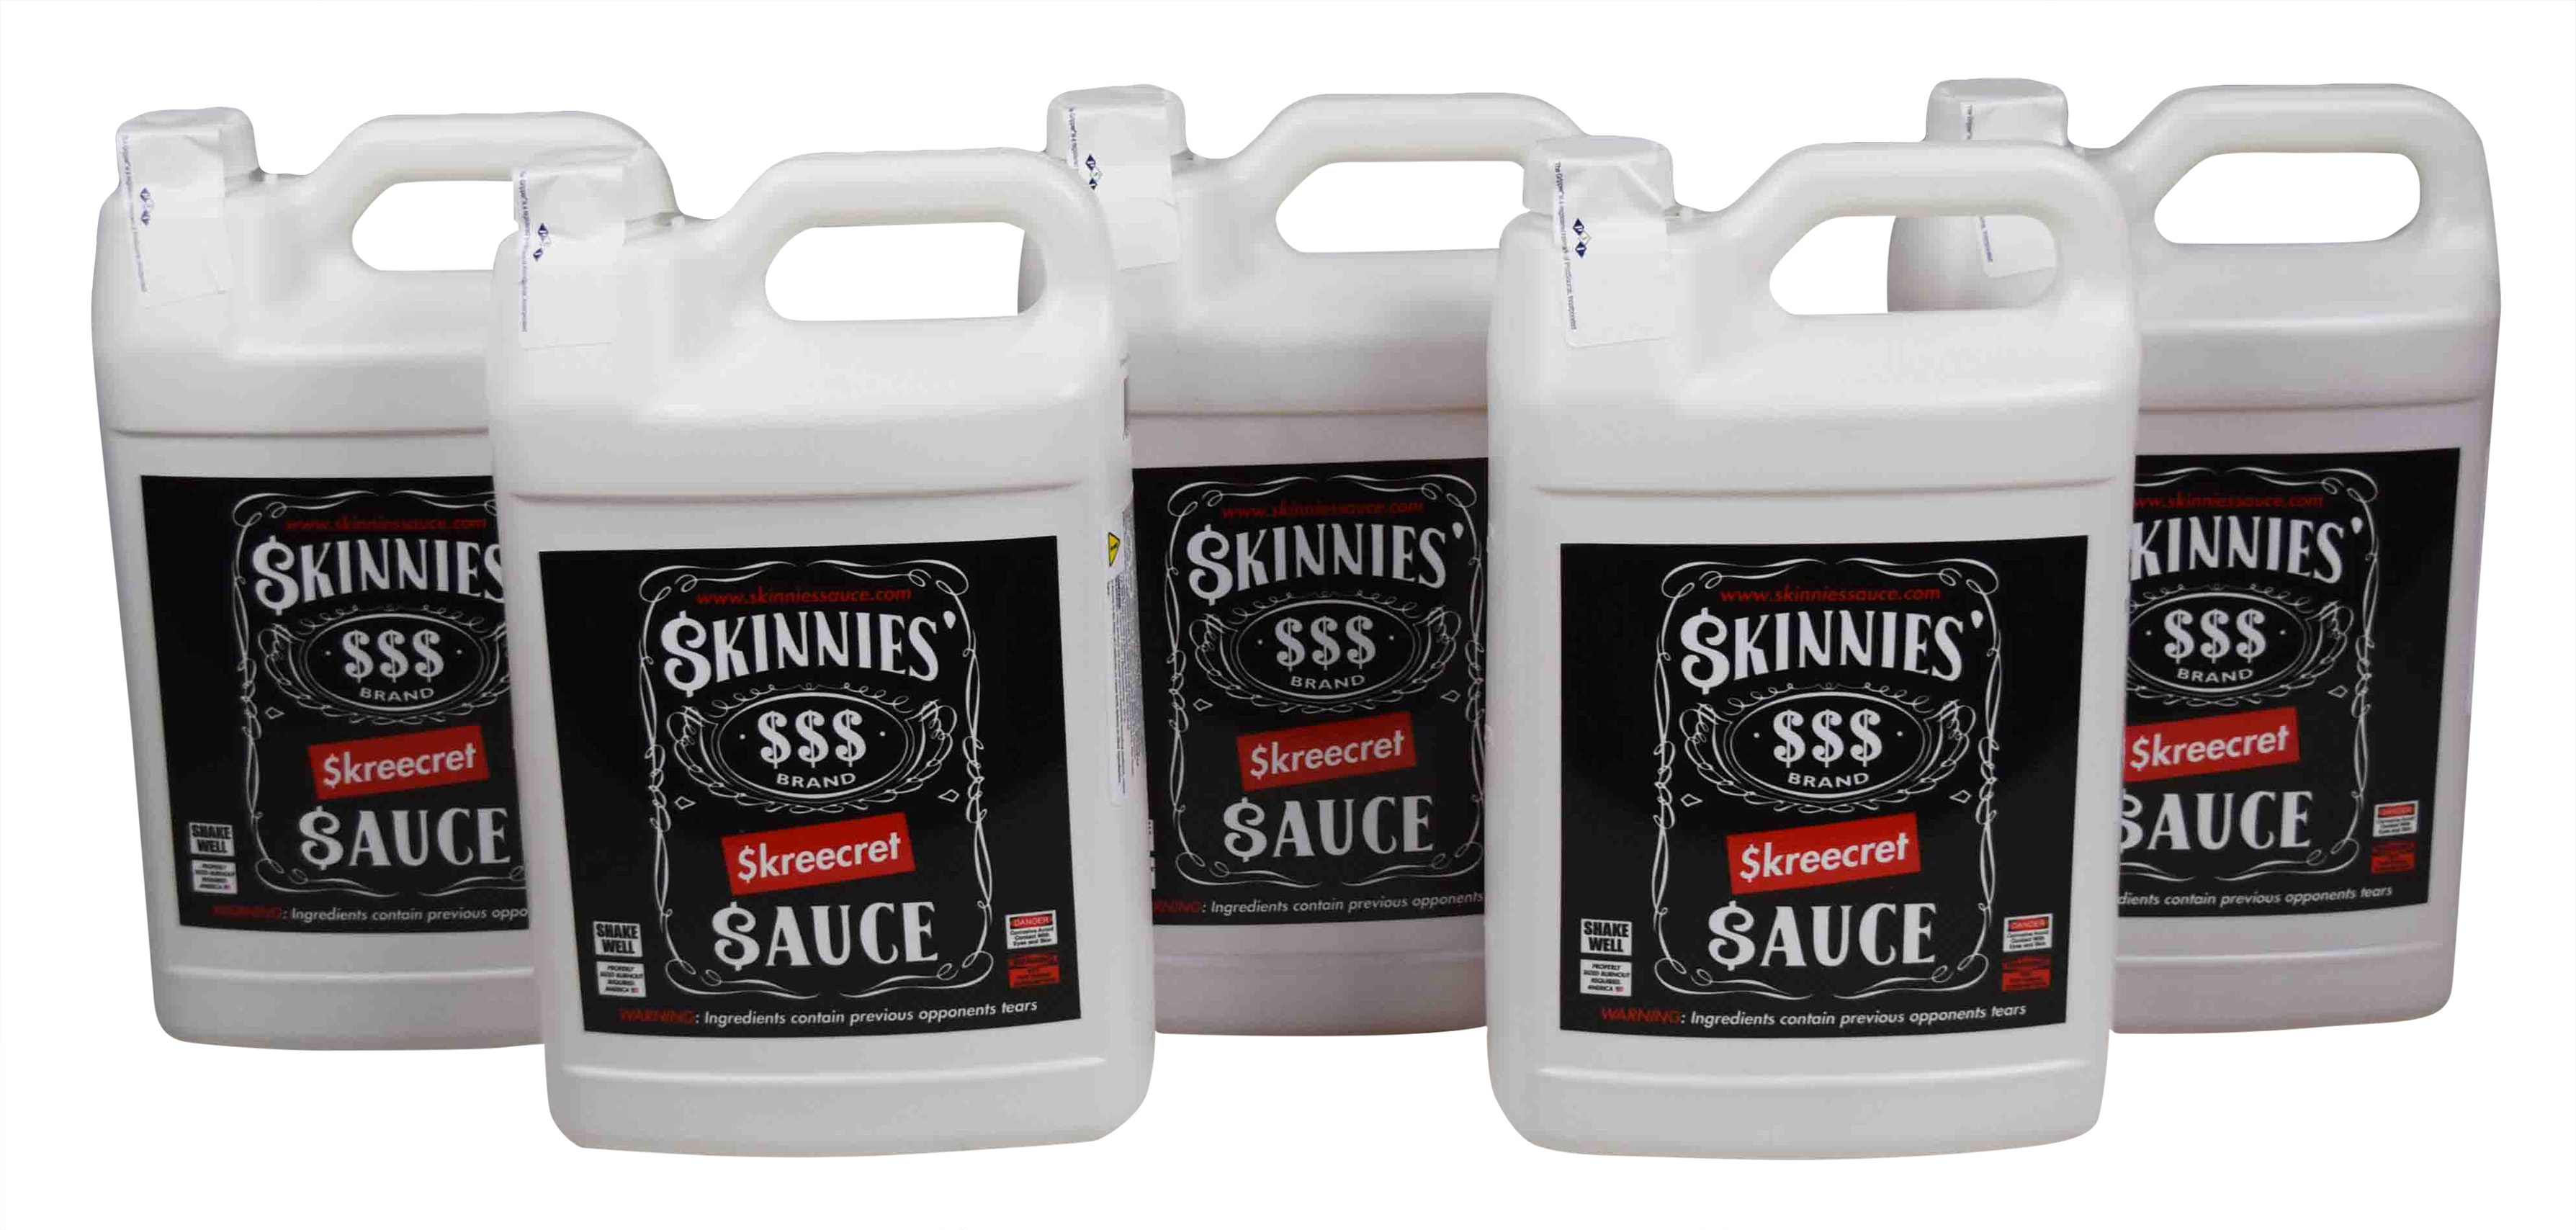 Made-in-USA-Skinnies-Skreecret-Sauce-No-Prep-Traction-5-Pack-image-1